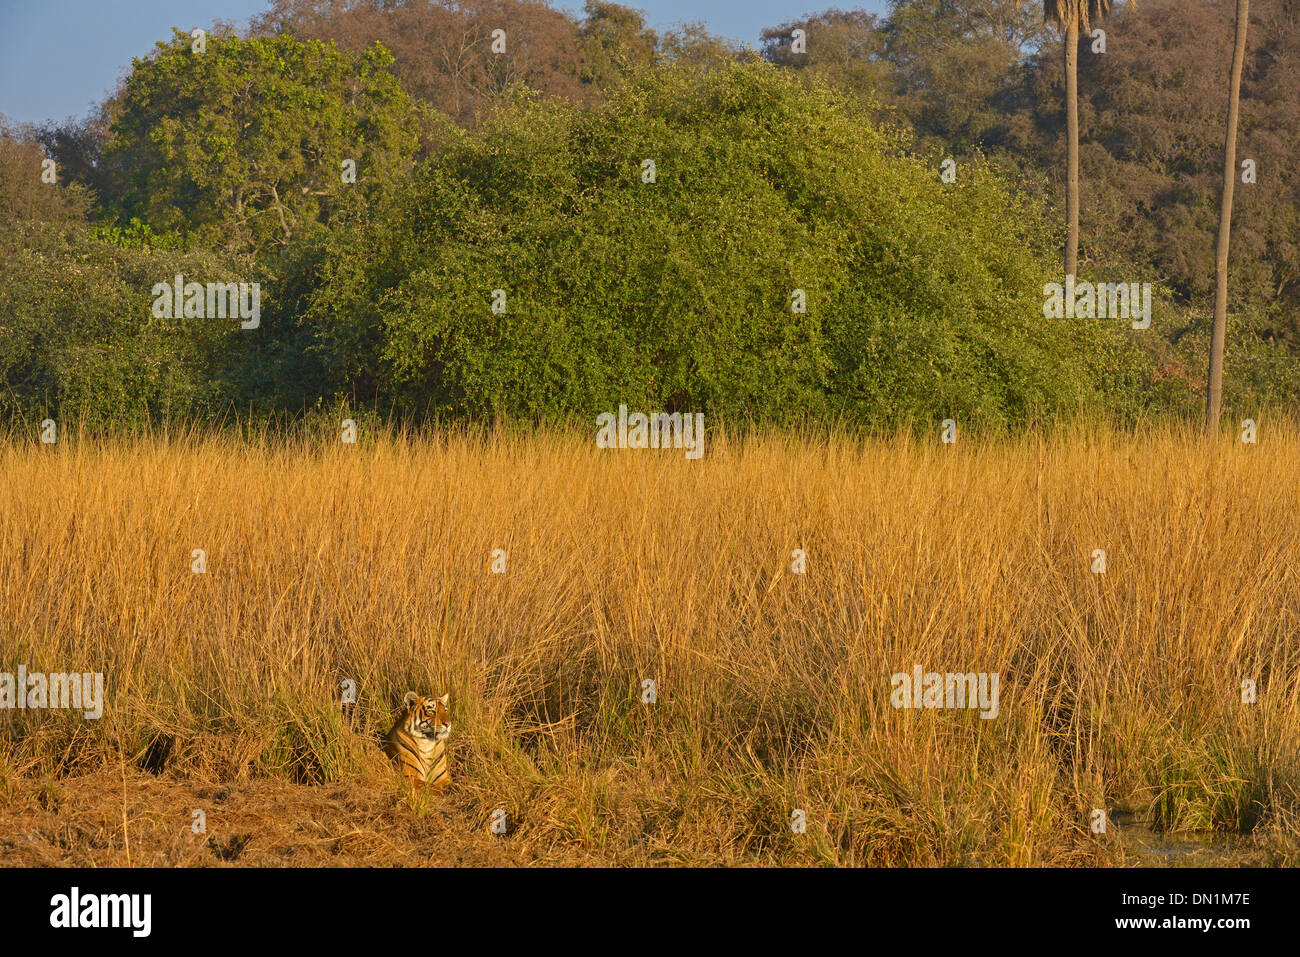 Wild tiger in a forest habitat in Ranthambore national park - Stock Image